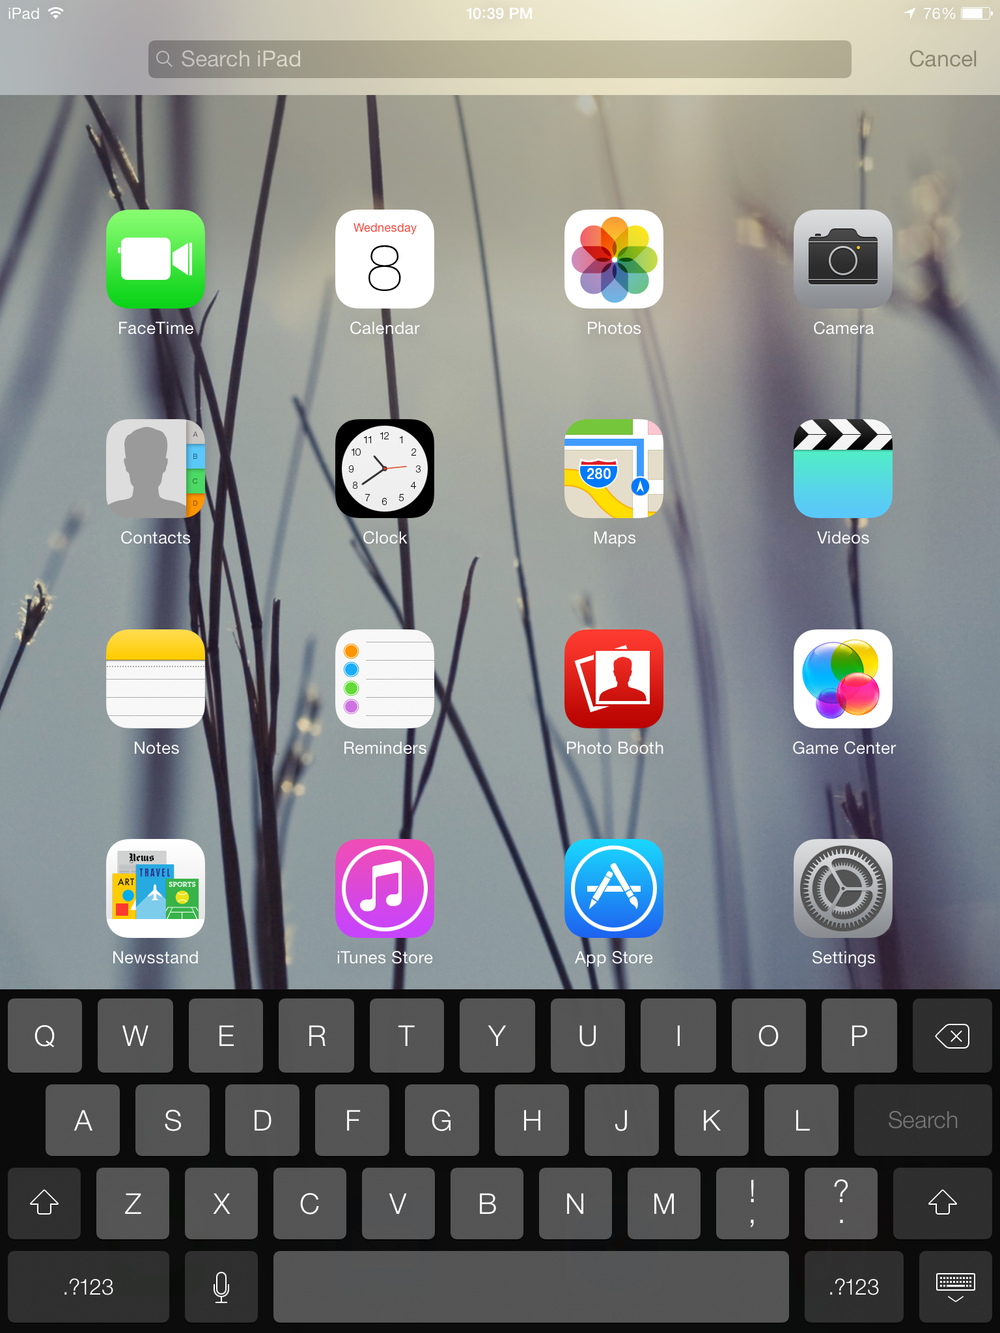 Apple has changed the access point for Spotlight. Users now must swipe down with one finger on any home screen to access it. Though the placement has changed, the effect is much more subtle. The search bar is more Android-like. The darker themed keyboard more closely resembles the Google's